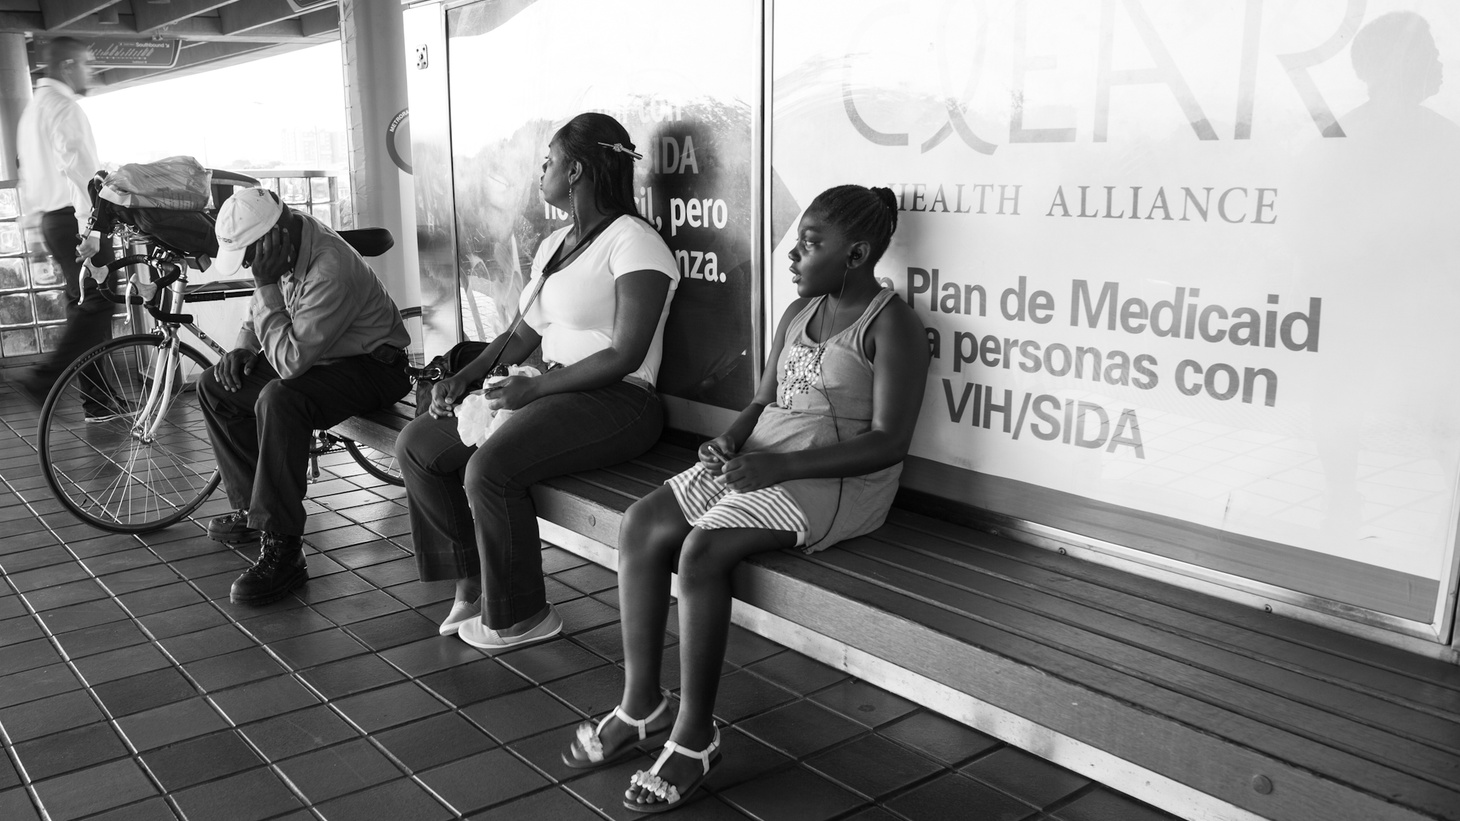 People sitting in front of a Medicaid sign.